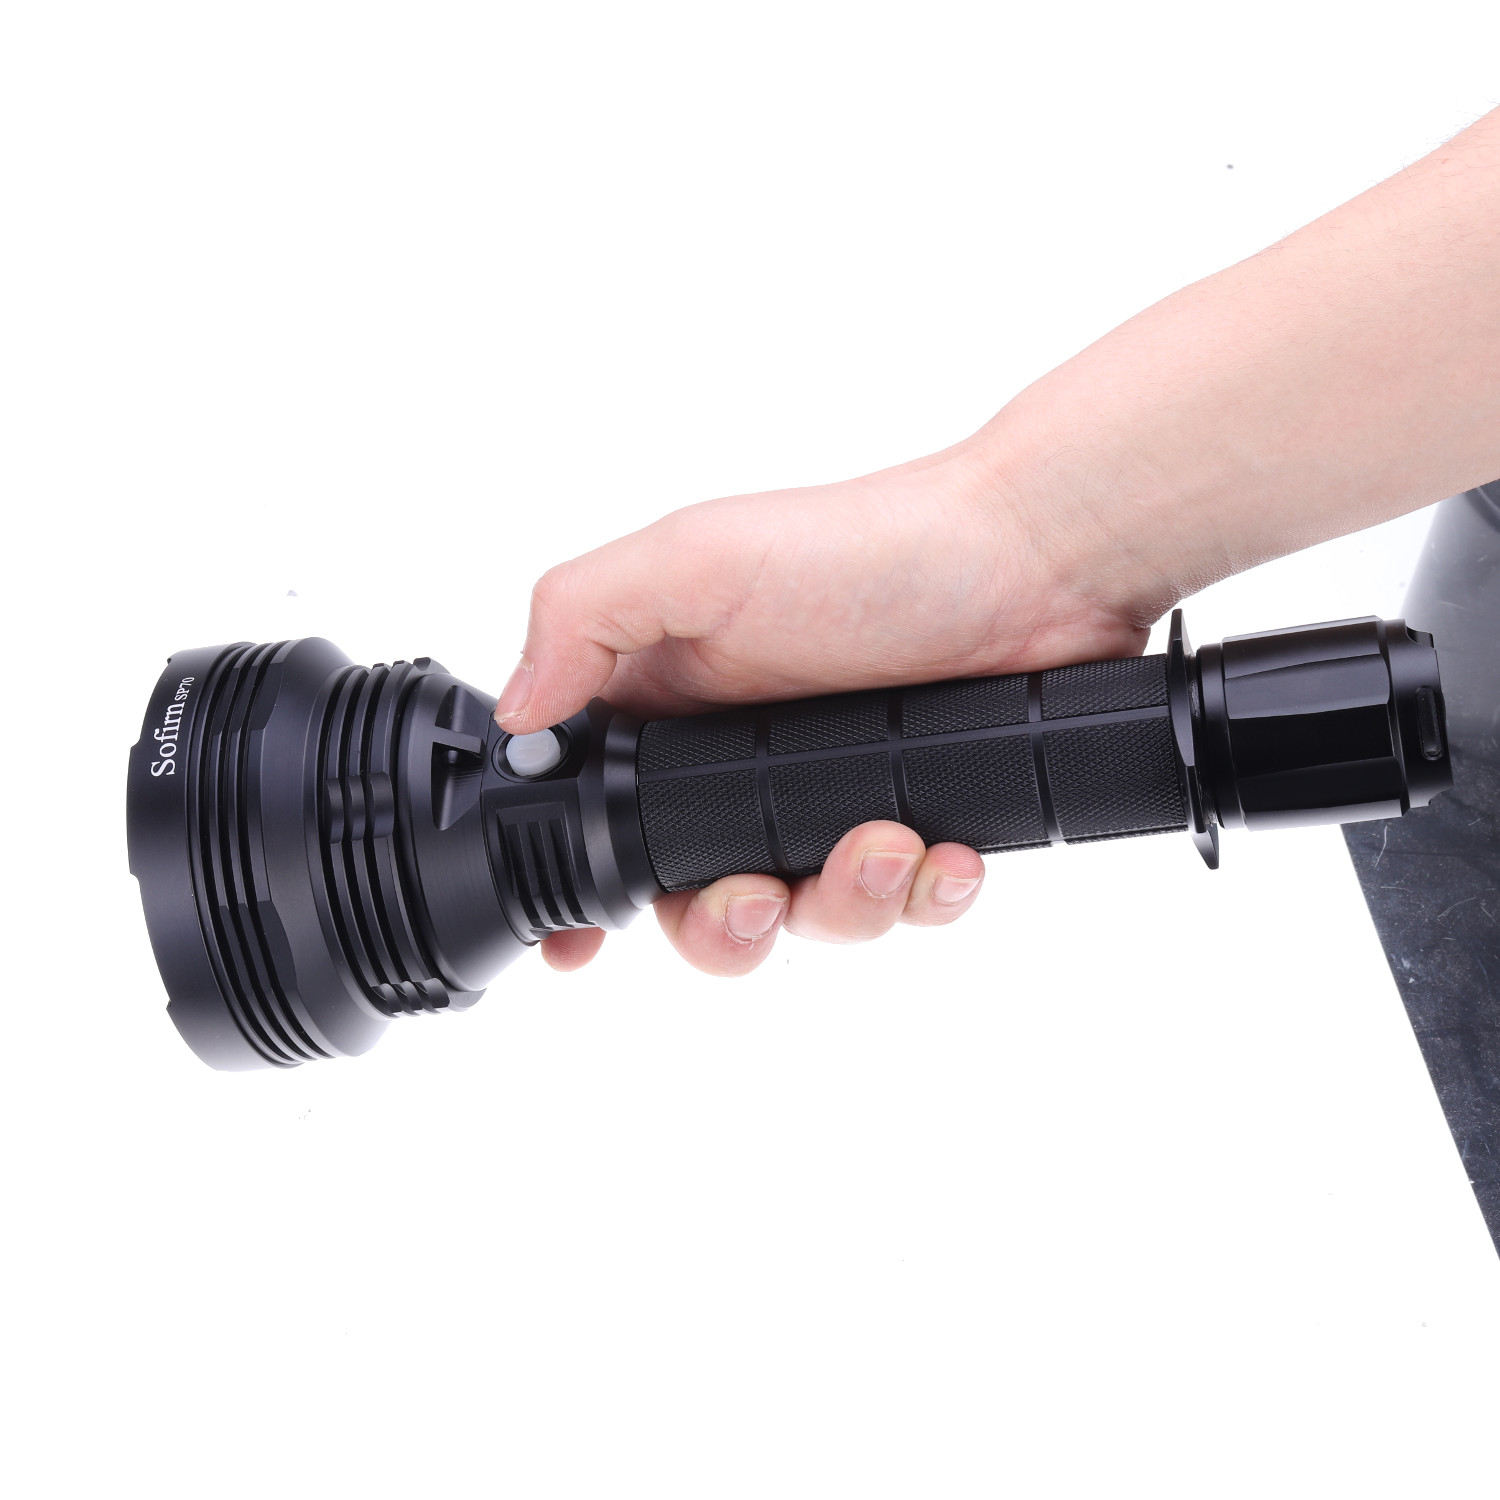 Sofirn SP70 XHP70.2 With ATR 2 Groups 7Modes 5500LM Ultra bright Tactical 18650 26650 LED Flashlight